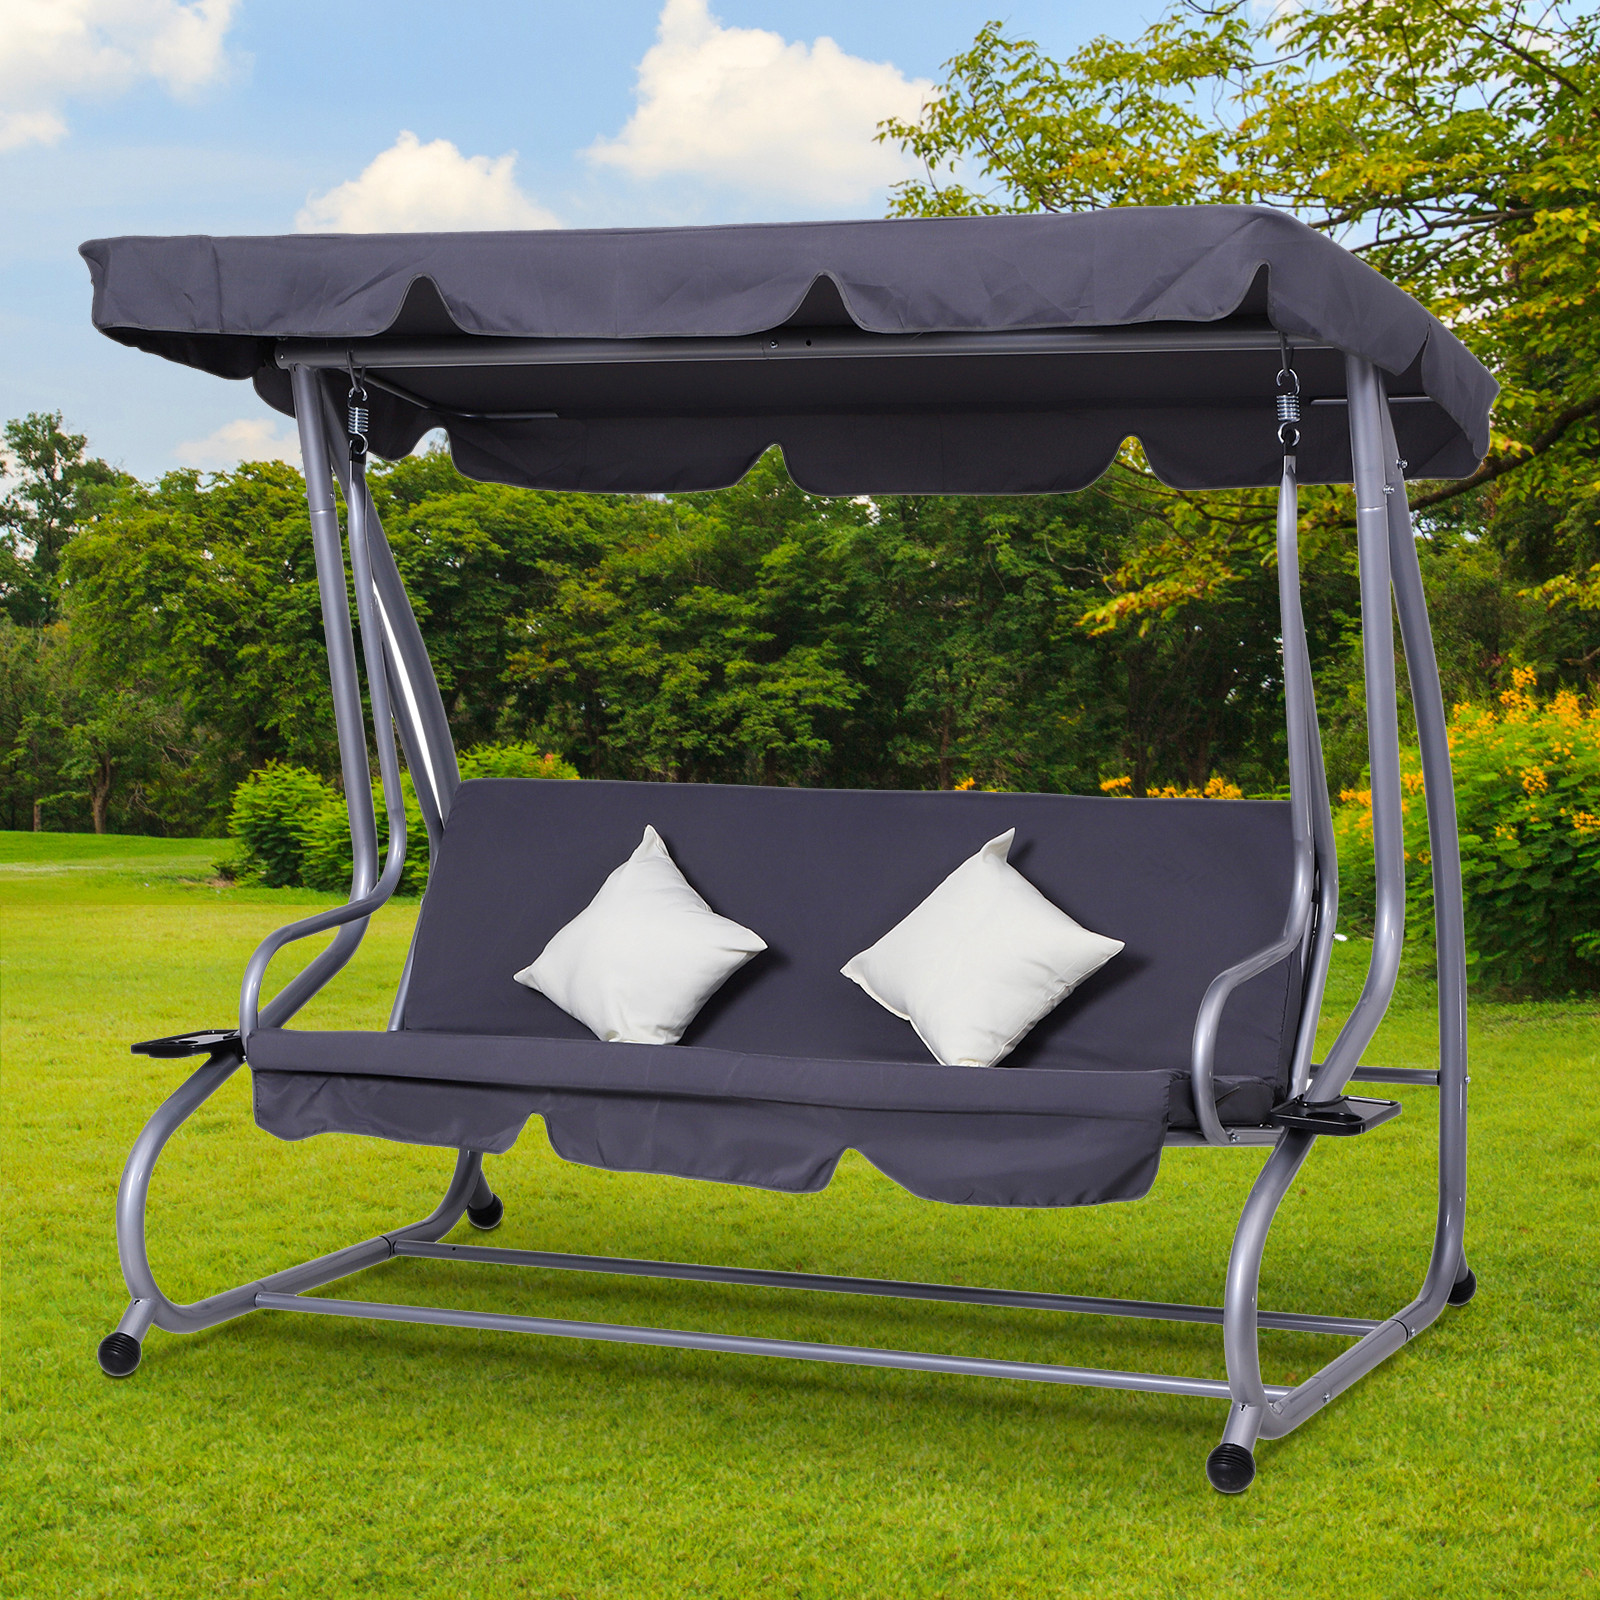 Details About 3 Seater Covered Swing Chair Garden Hammock And Bed Heavy Duty W Canopy And 2